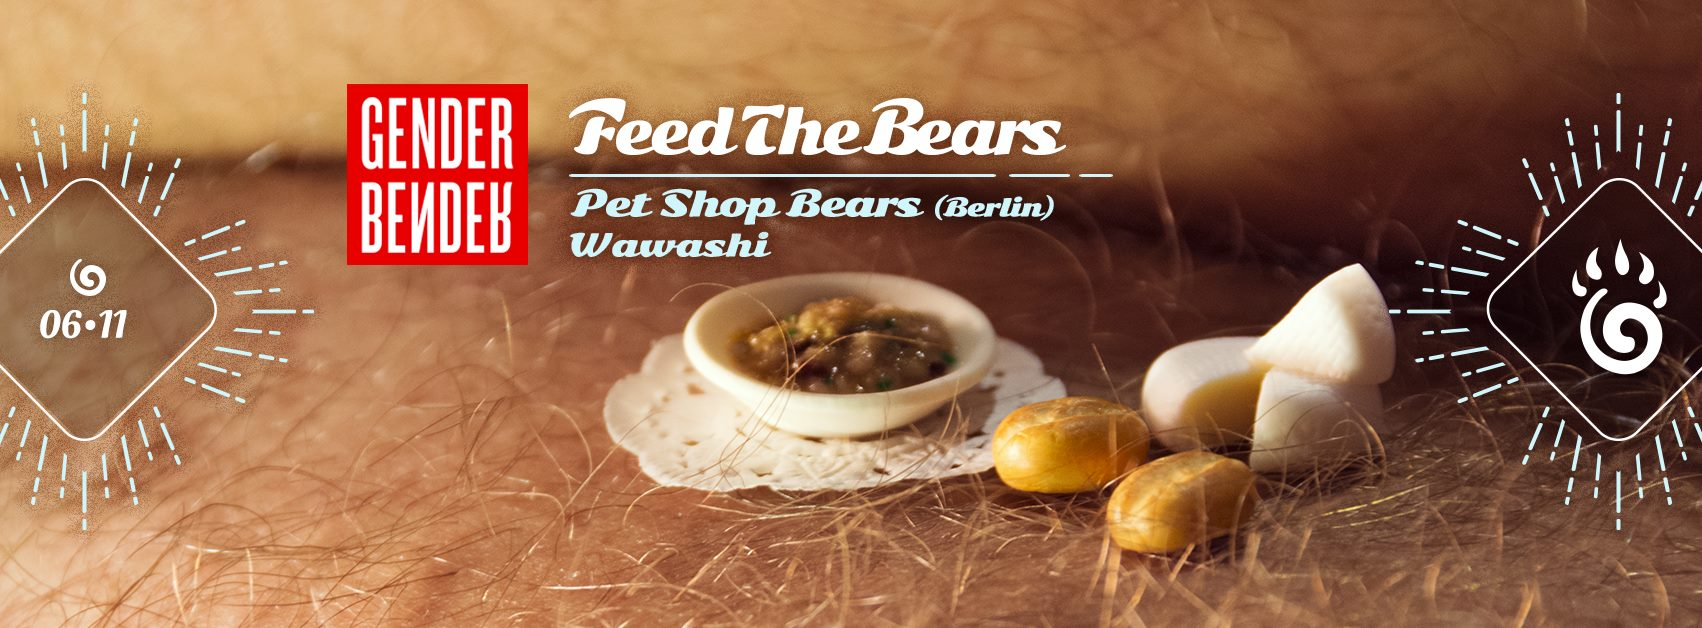 FEEDTHEBEARS – GENDER BENDER